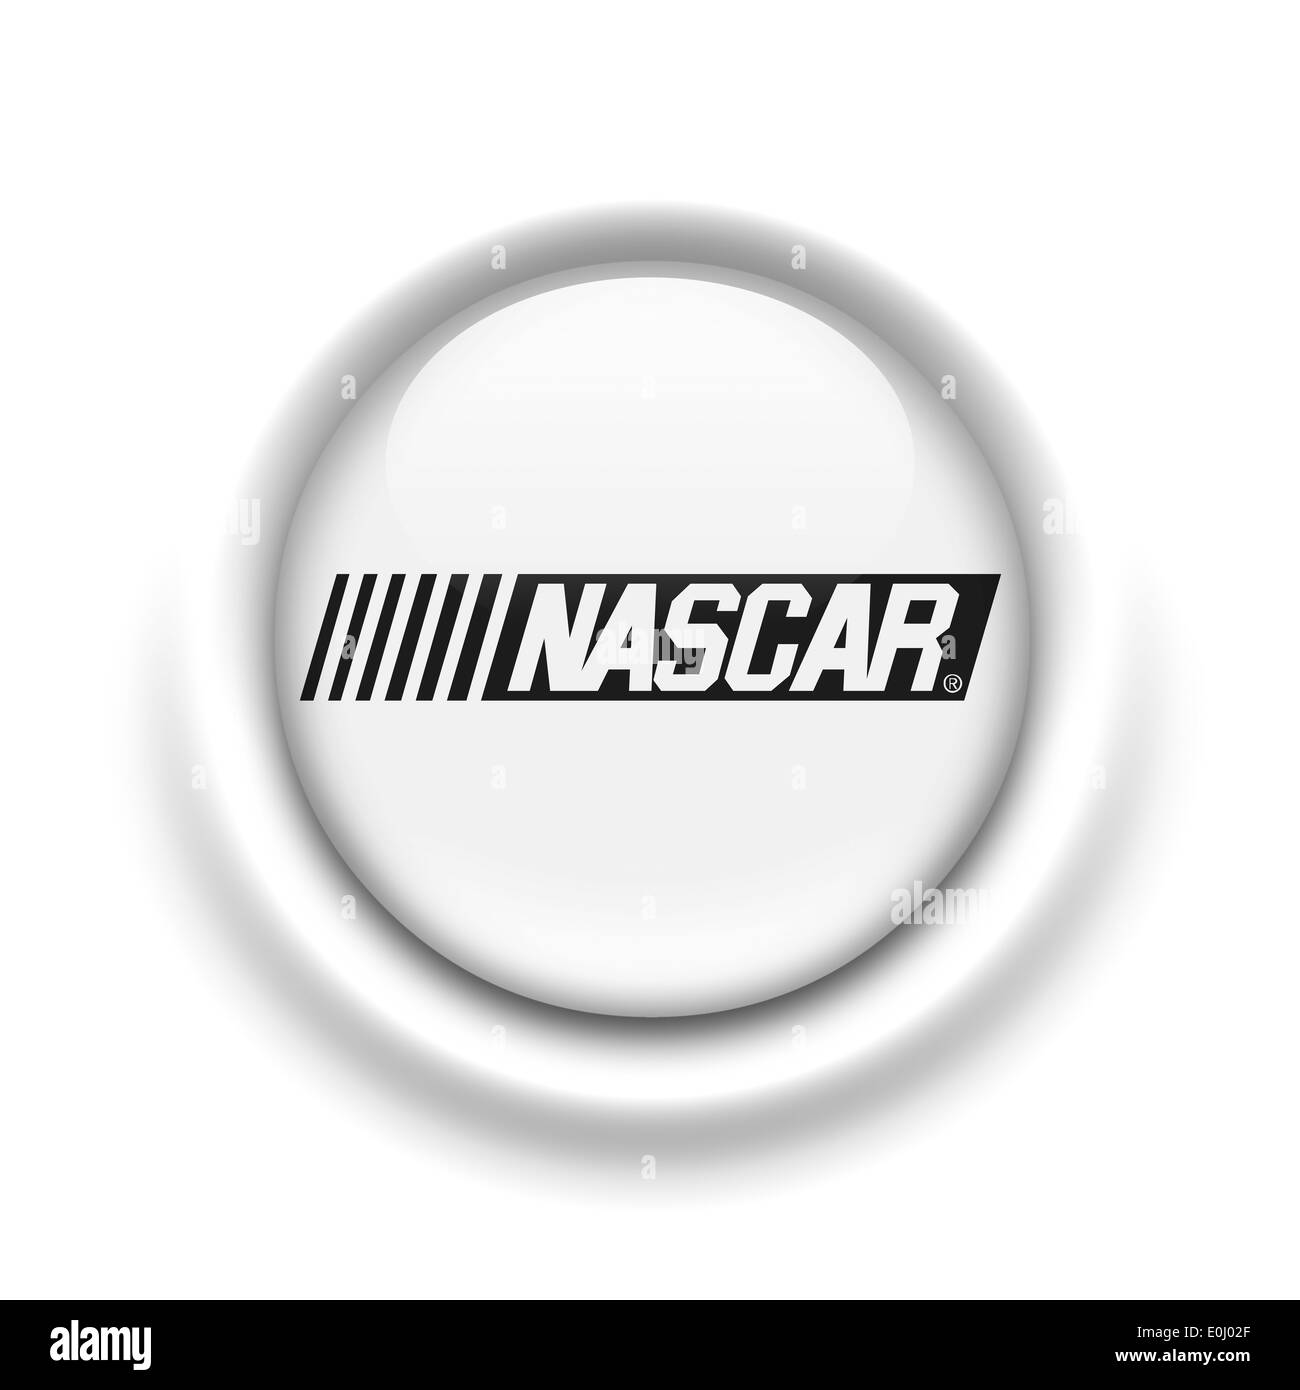 Nascar Logo Icon Symbol Flag Emblem Stock Photo 69236679 Alamy